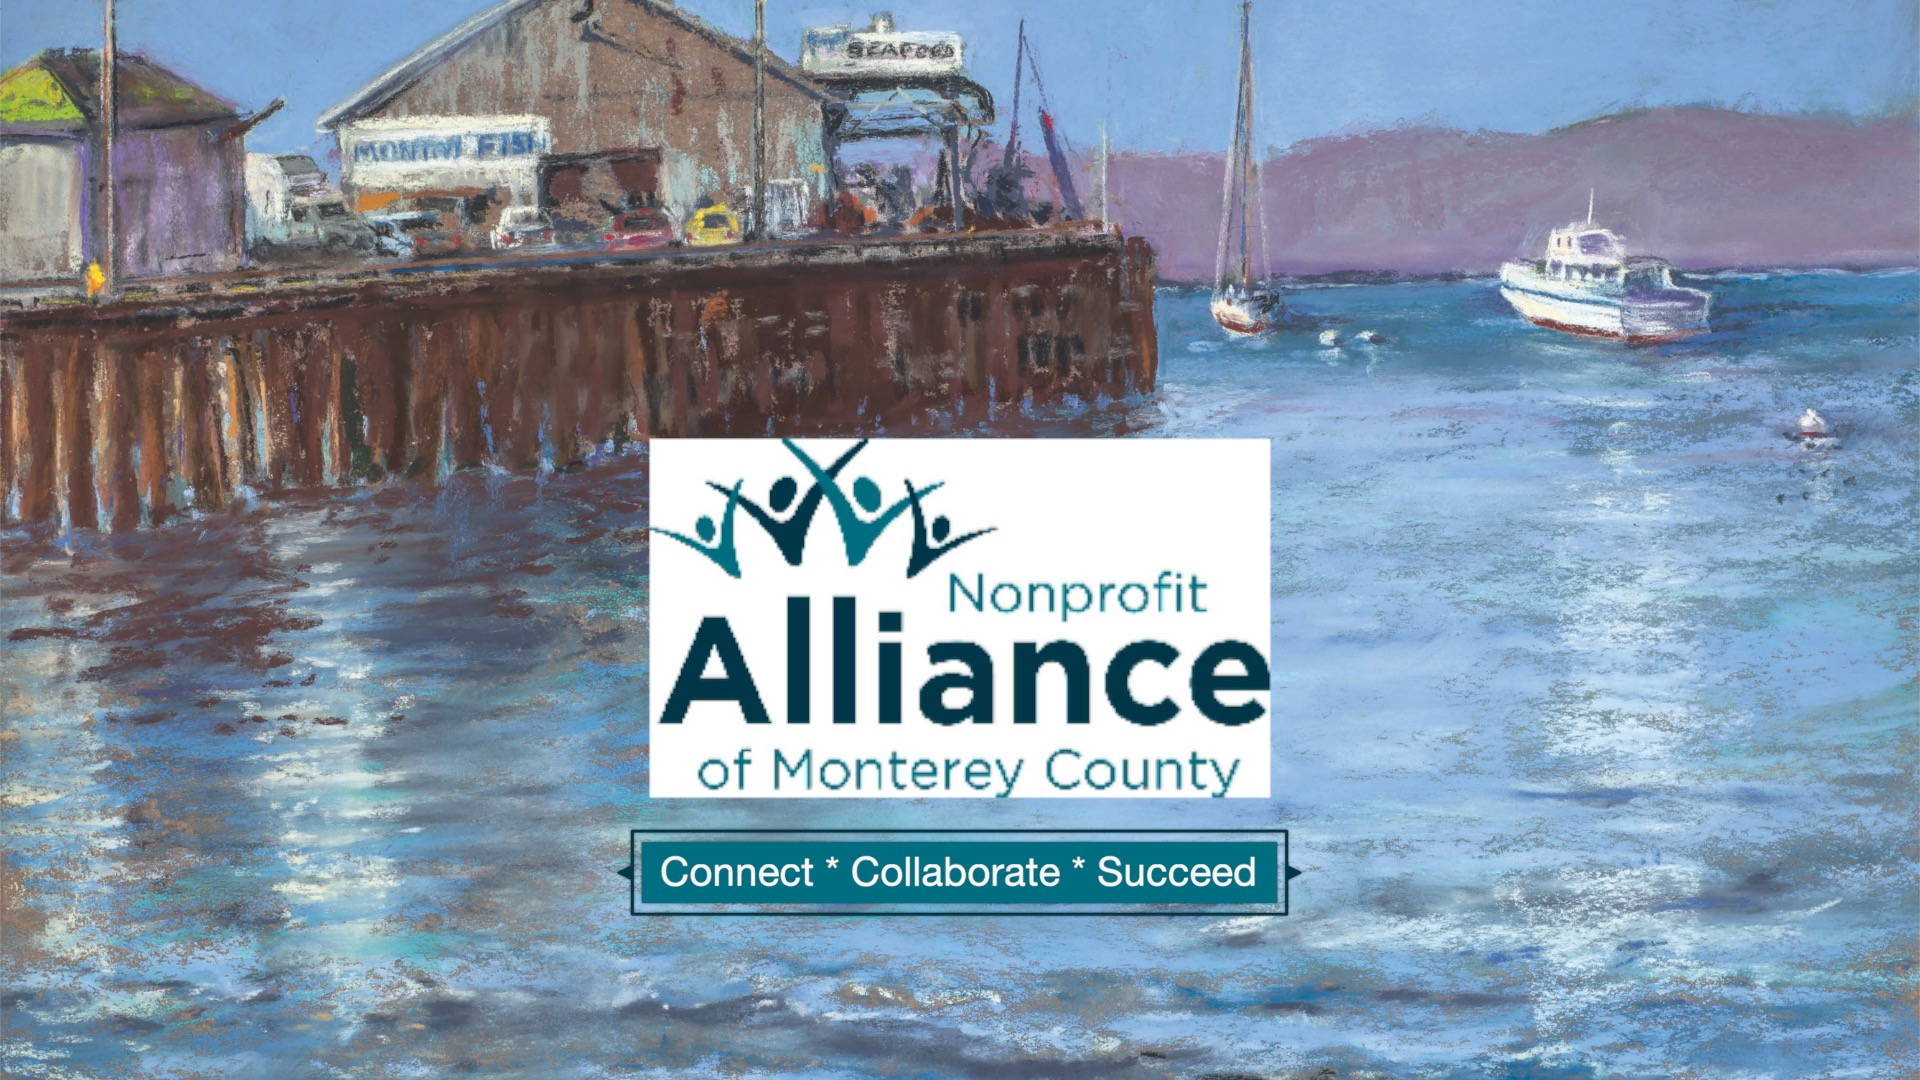 Alliance of Monterey County